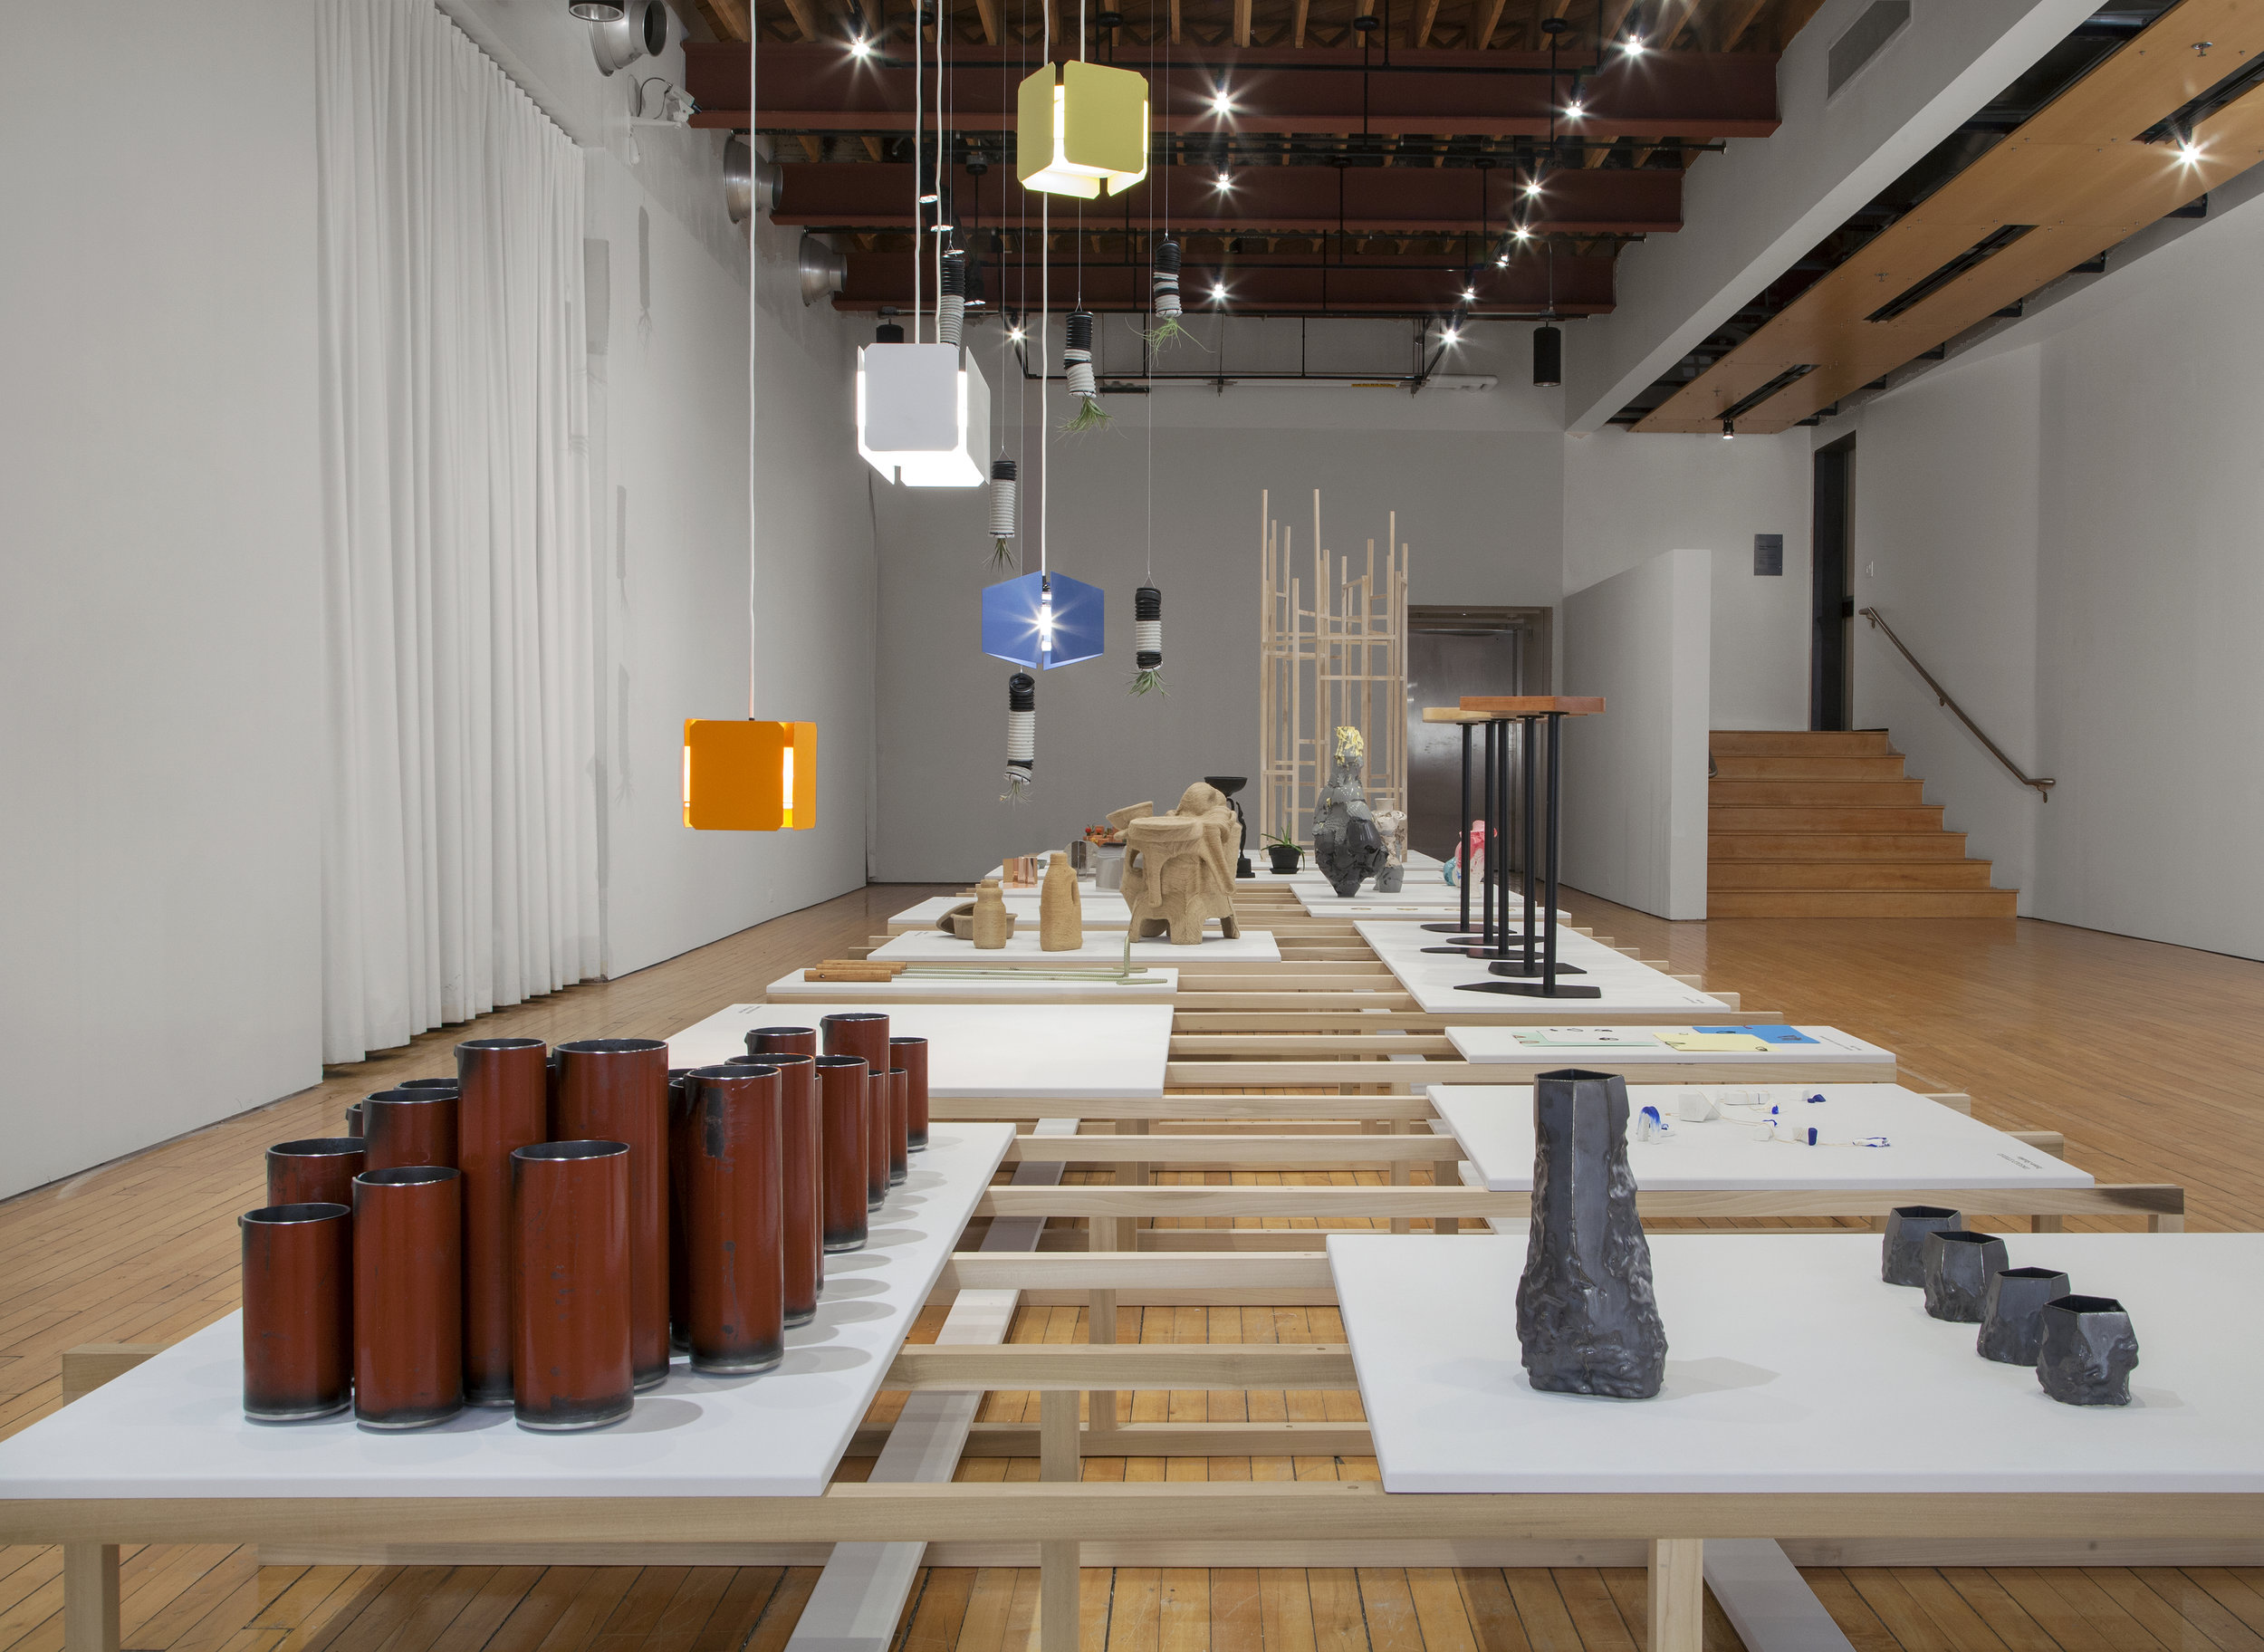 FORM EVER FOLLOWS: ITERATIVE DESIGN OBJECTS   Peter Paul Luce Gallery - Cornell College January 2016 - February 2016 Photo: PD Rearick